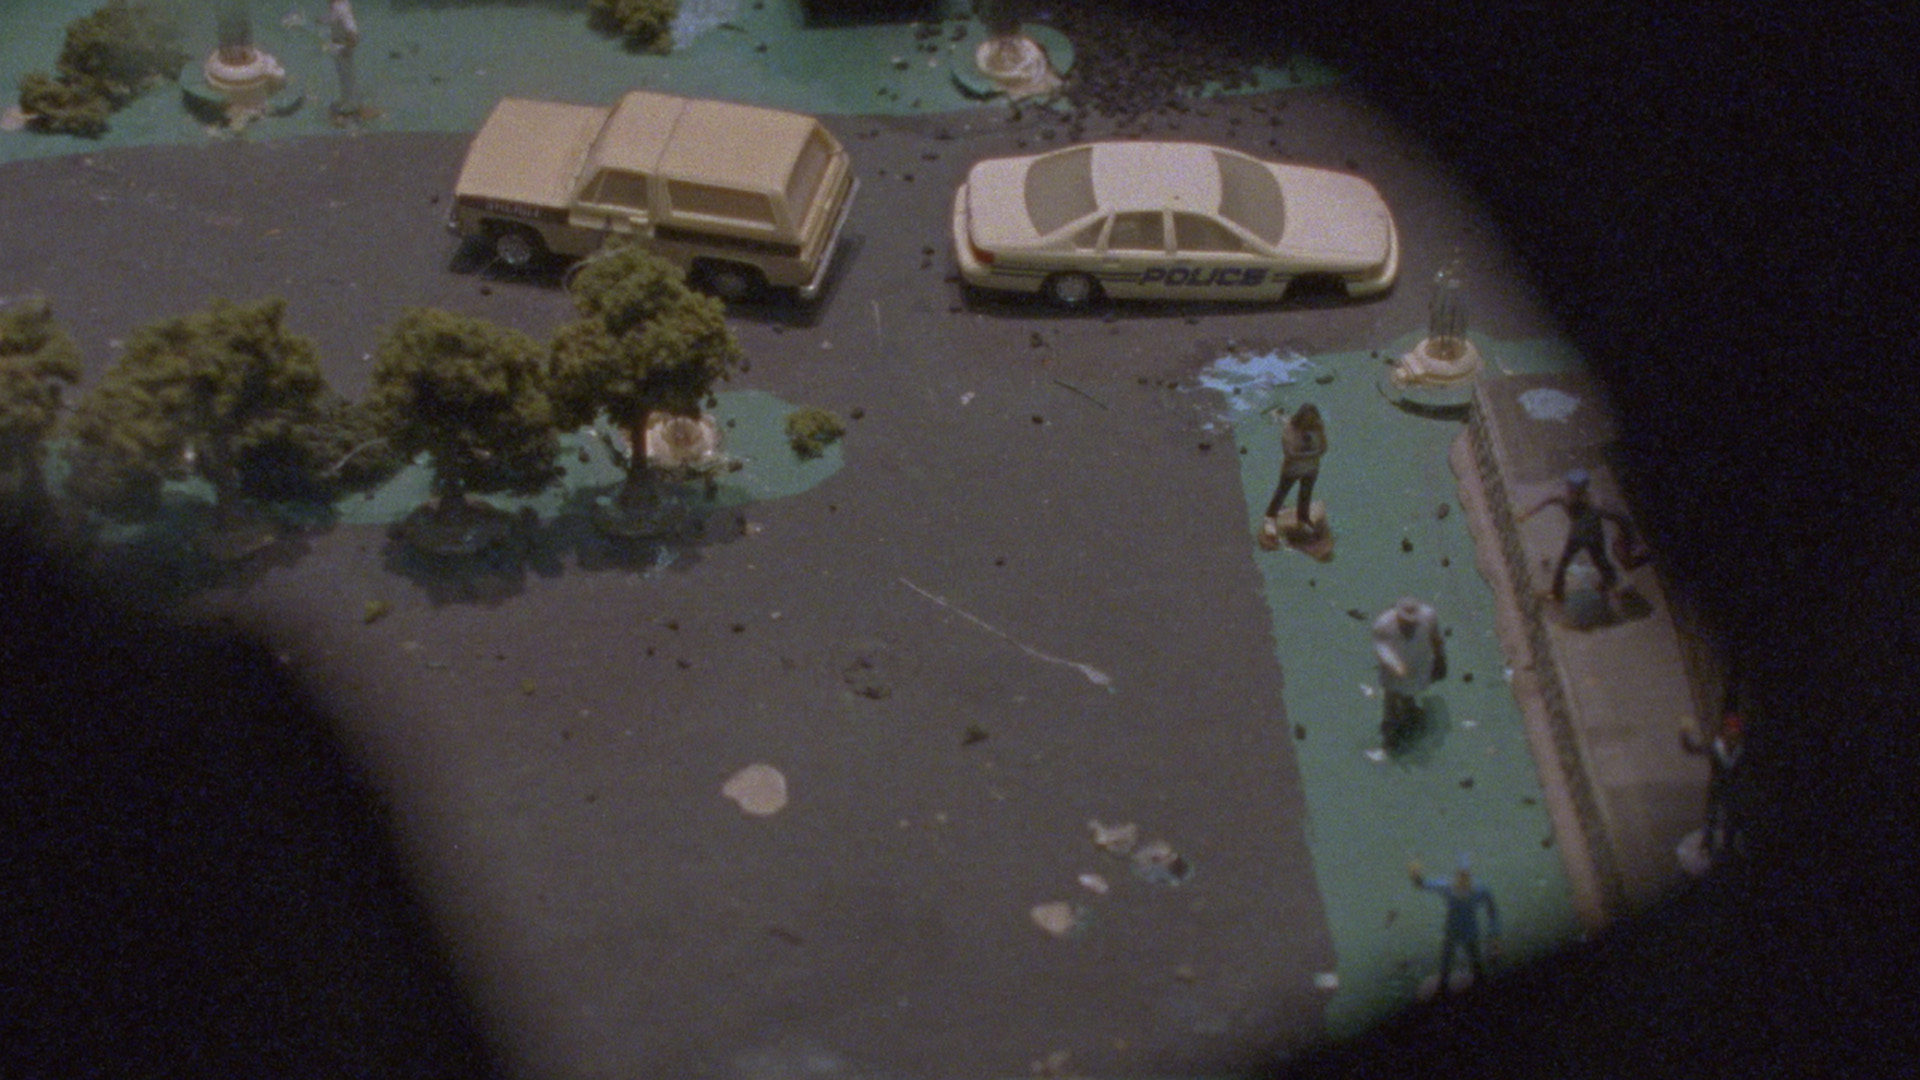 Peep hole showing scale model of a street with police car and human figures in still from Terror Has No Shape(2020) by Luis Arnias